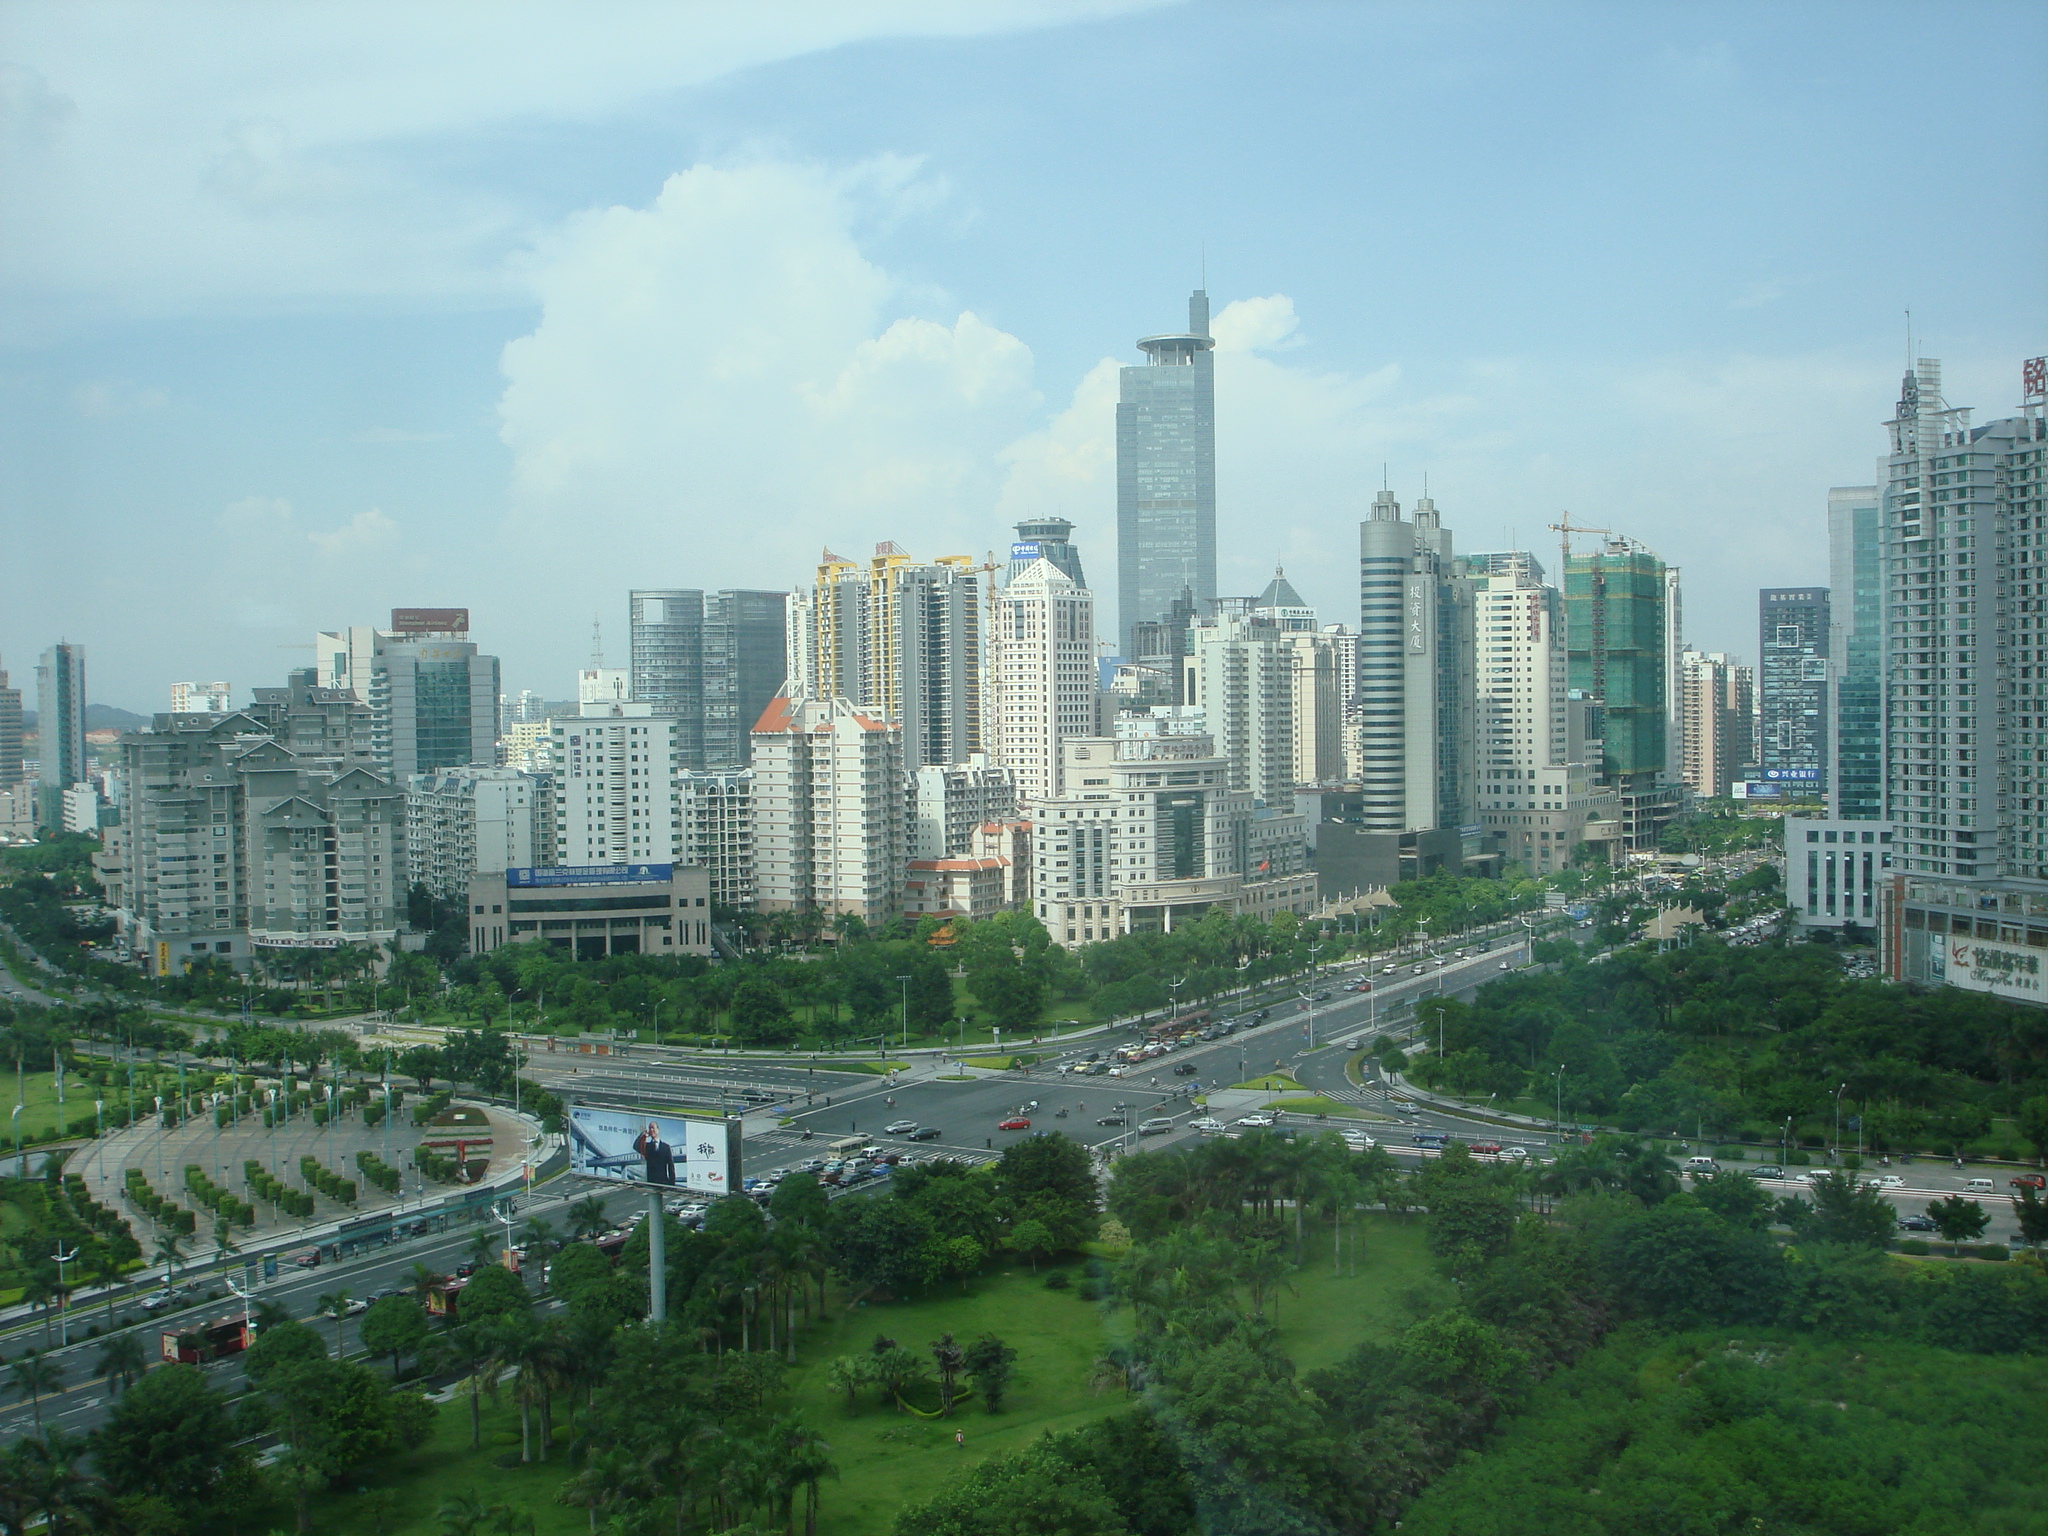 Nanning China  city photos gallery : Nanning skyline 2008 Wikimedia Commons